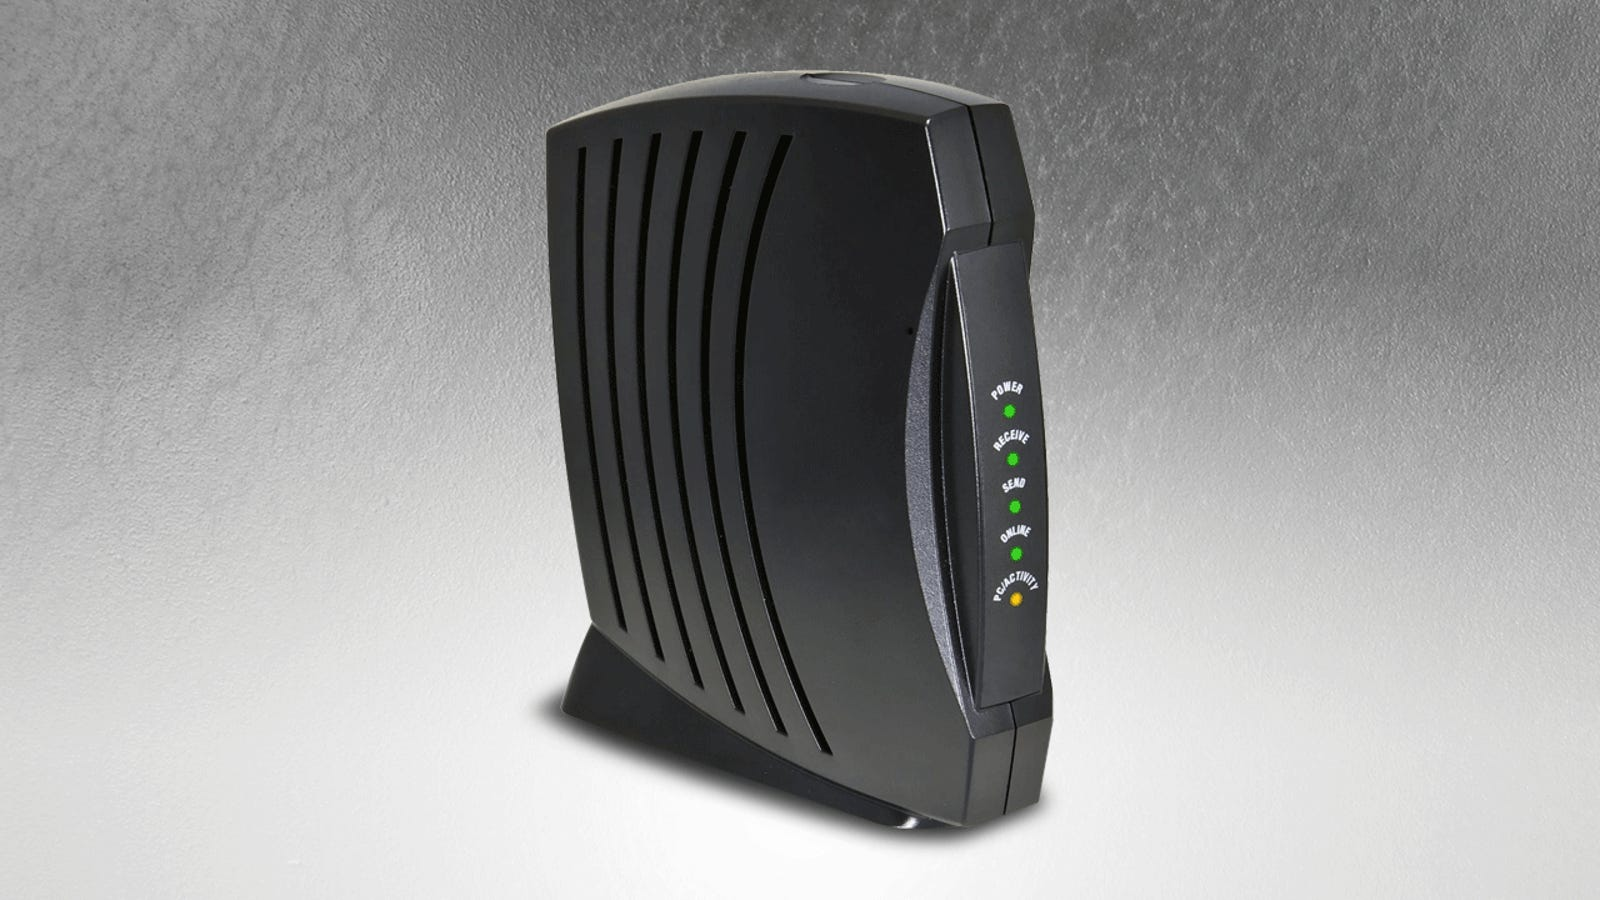 Why Does My Modem Blink Even When I\'m Not Using The Internet?